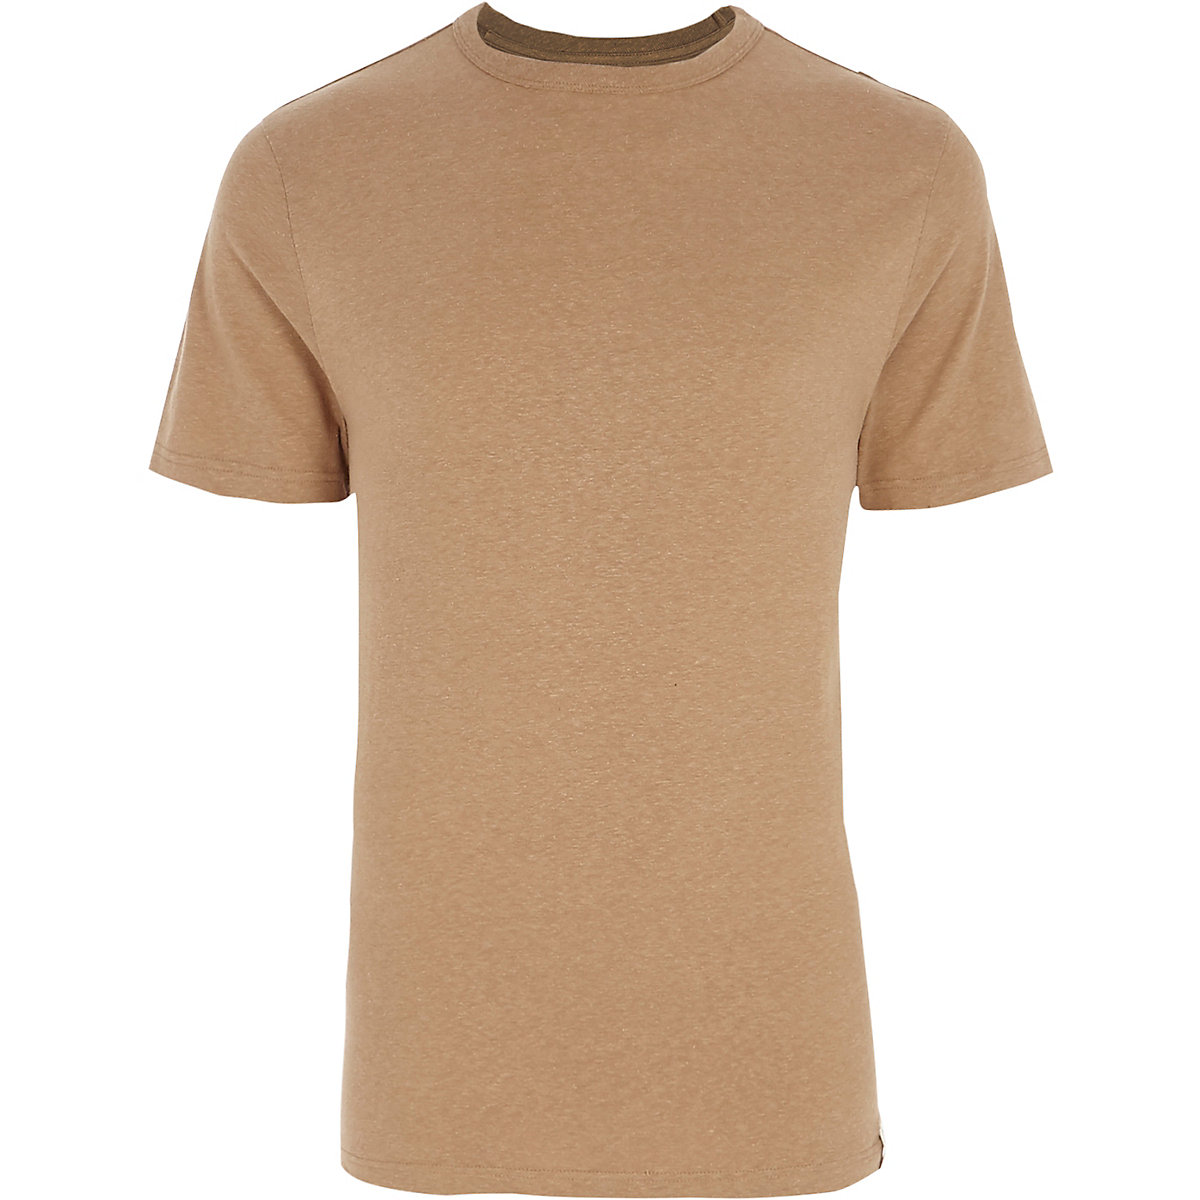 Camel slim fit crew neck T-shirt